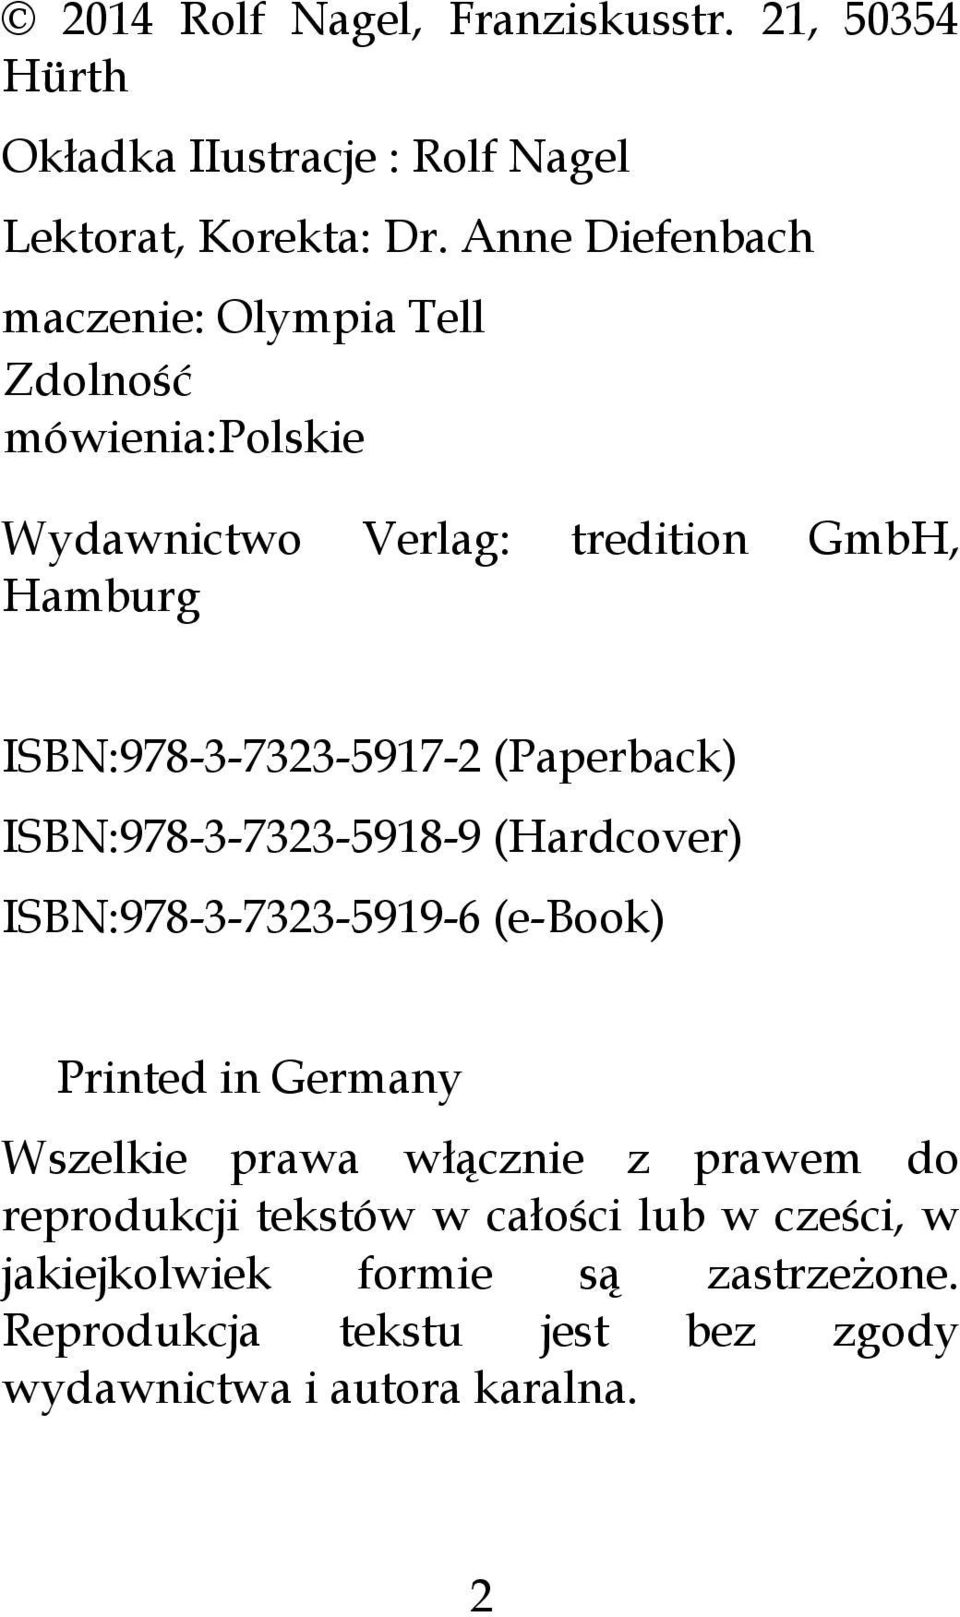 ISBN:978-3-7323-5917-2 (Paperback) ISBN:978-3-7323-5918-9 (Hardcover) ISBN:978-3-7323-5919-6 (e-book) Printed in Germany Wszelkie